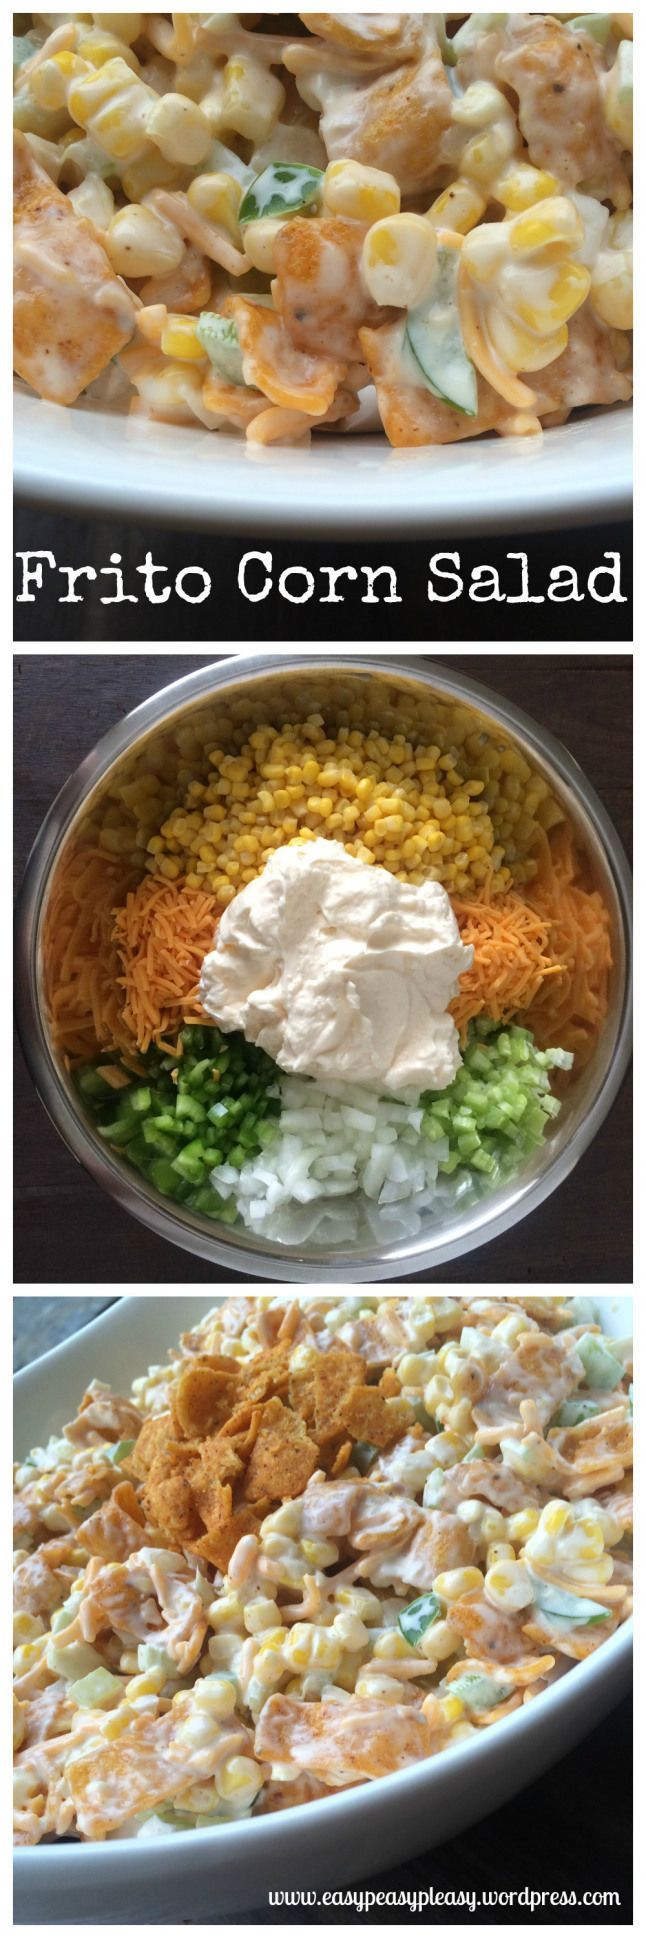 2017 05 potluck ideas for small groups - Frito Corn Salad Is Great For Potlucks Bbq And Parties